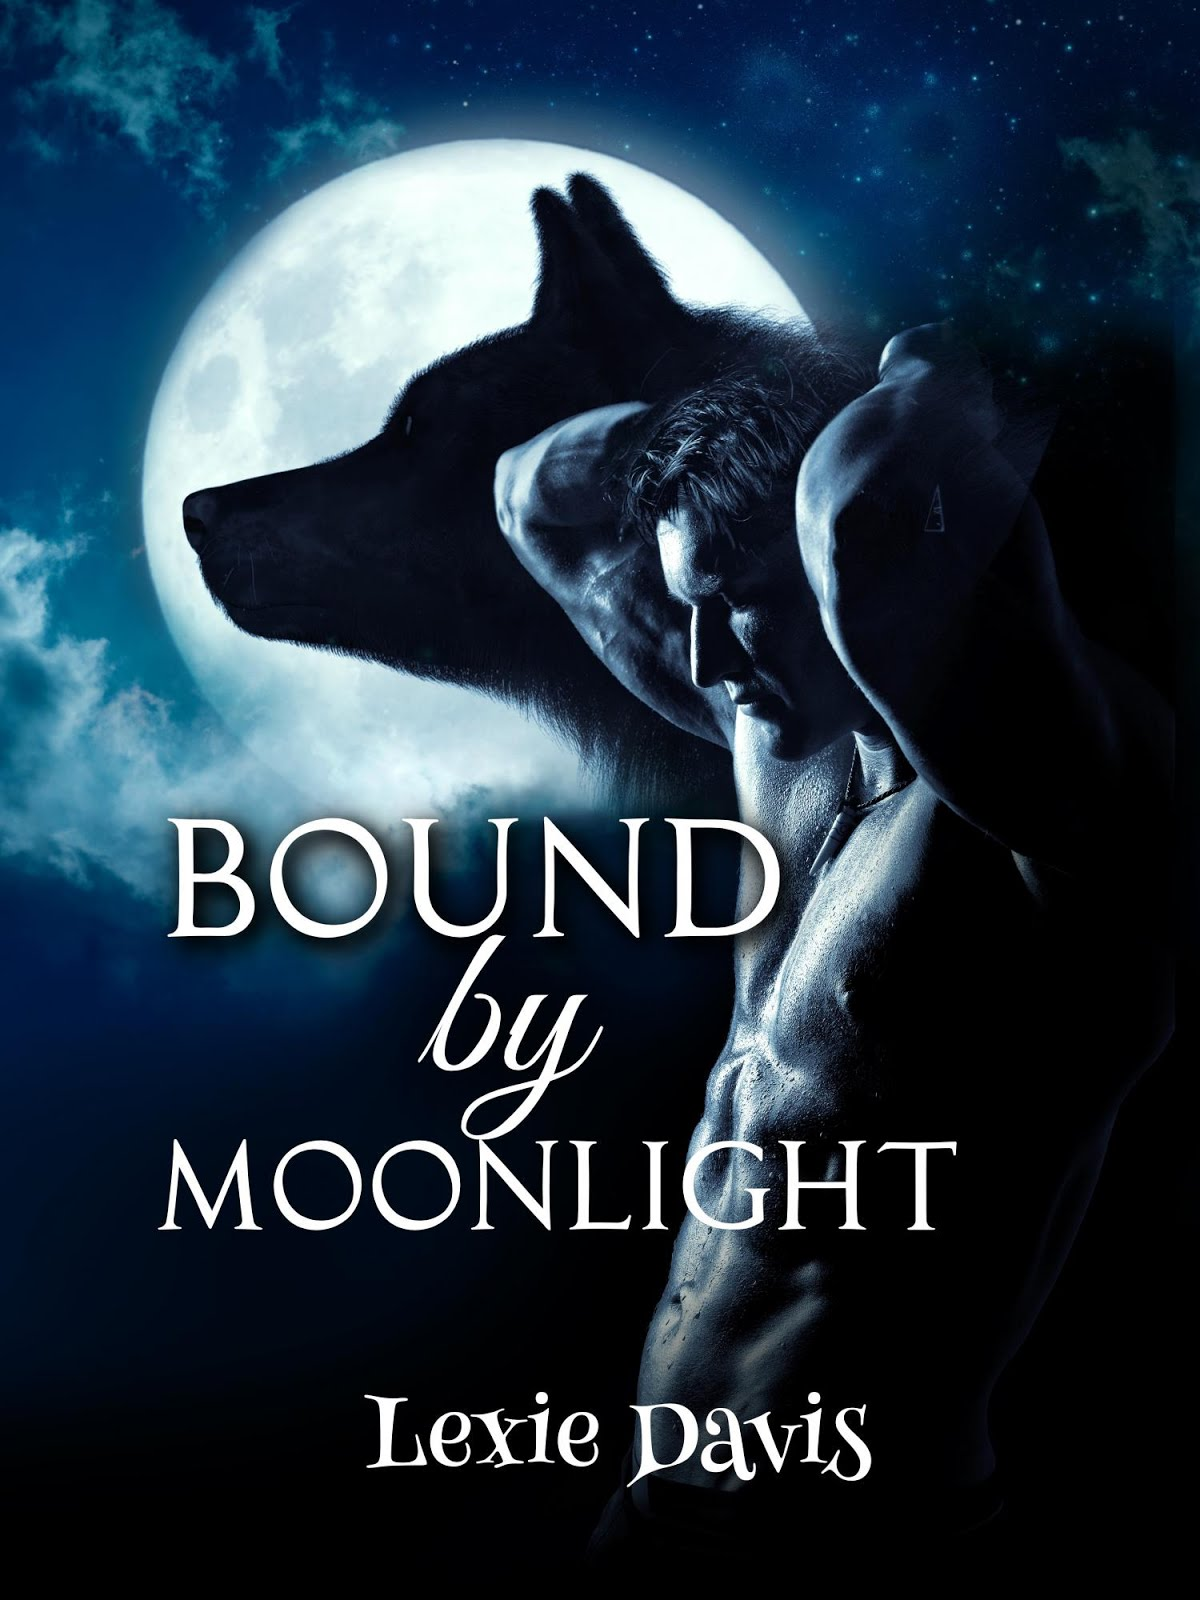 Bound by Moonlight